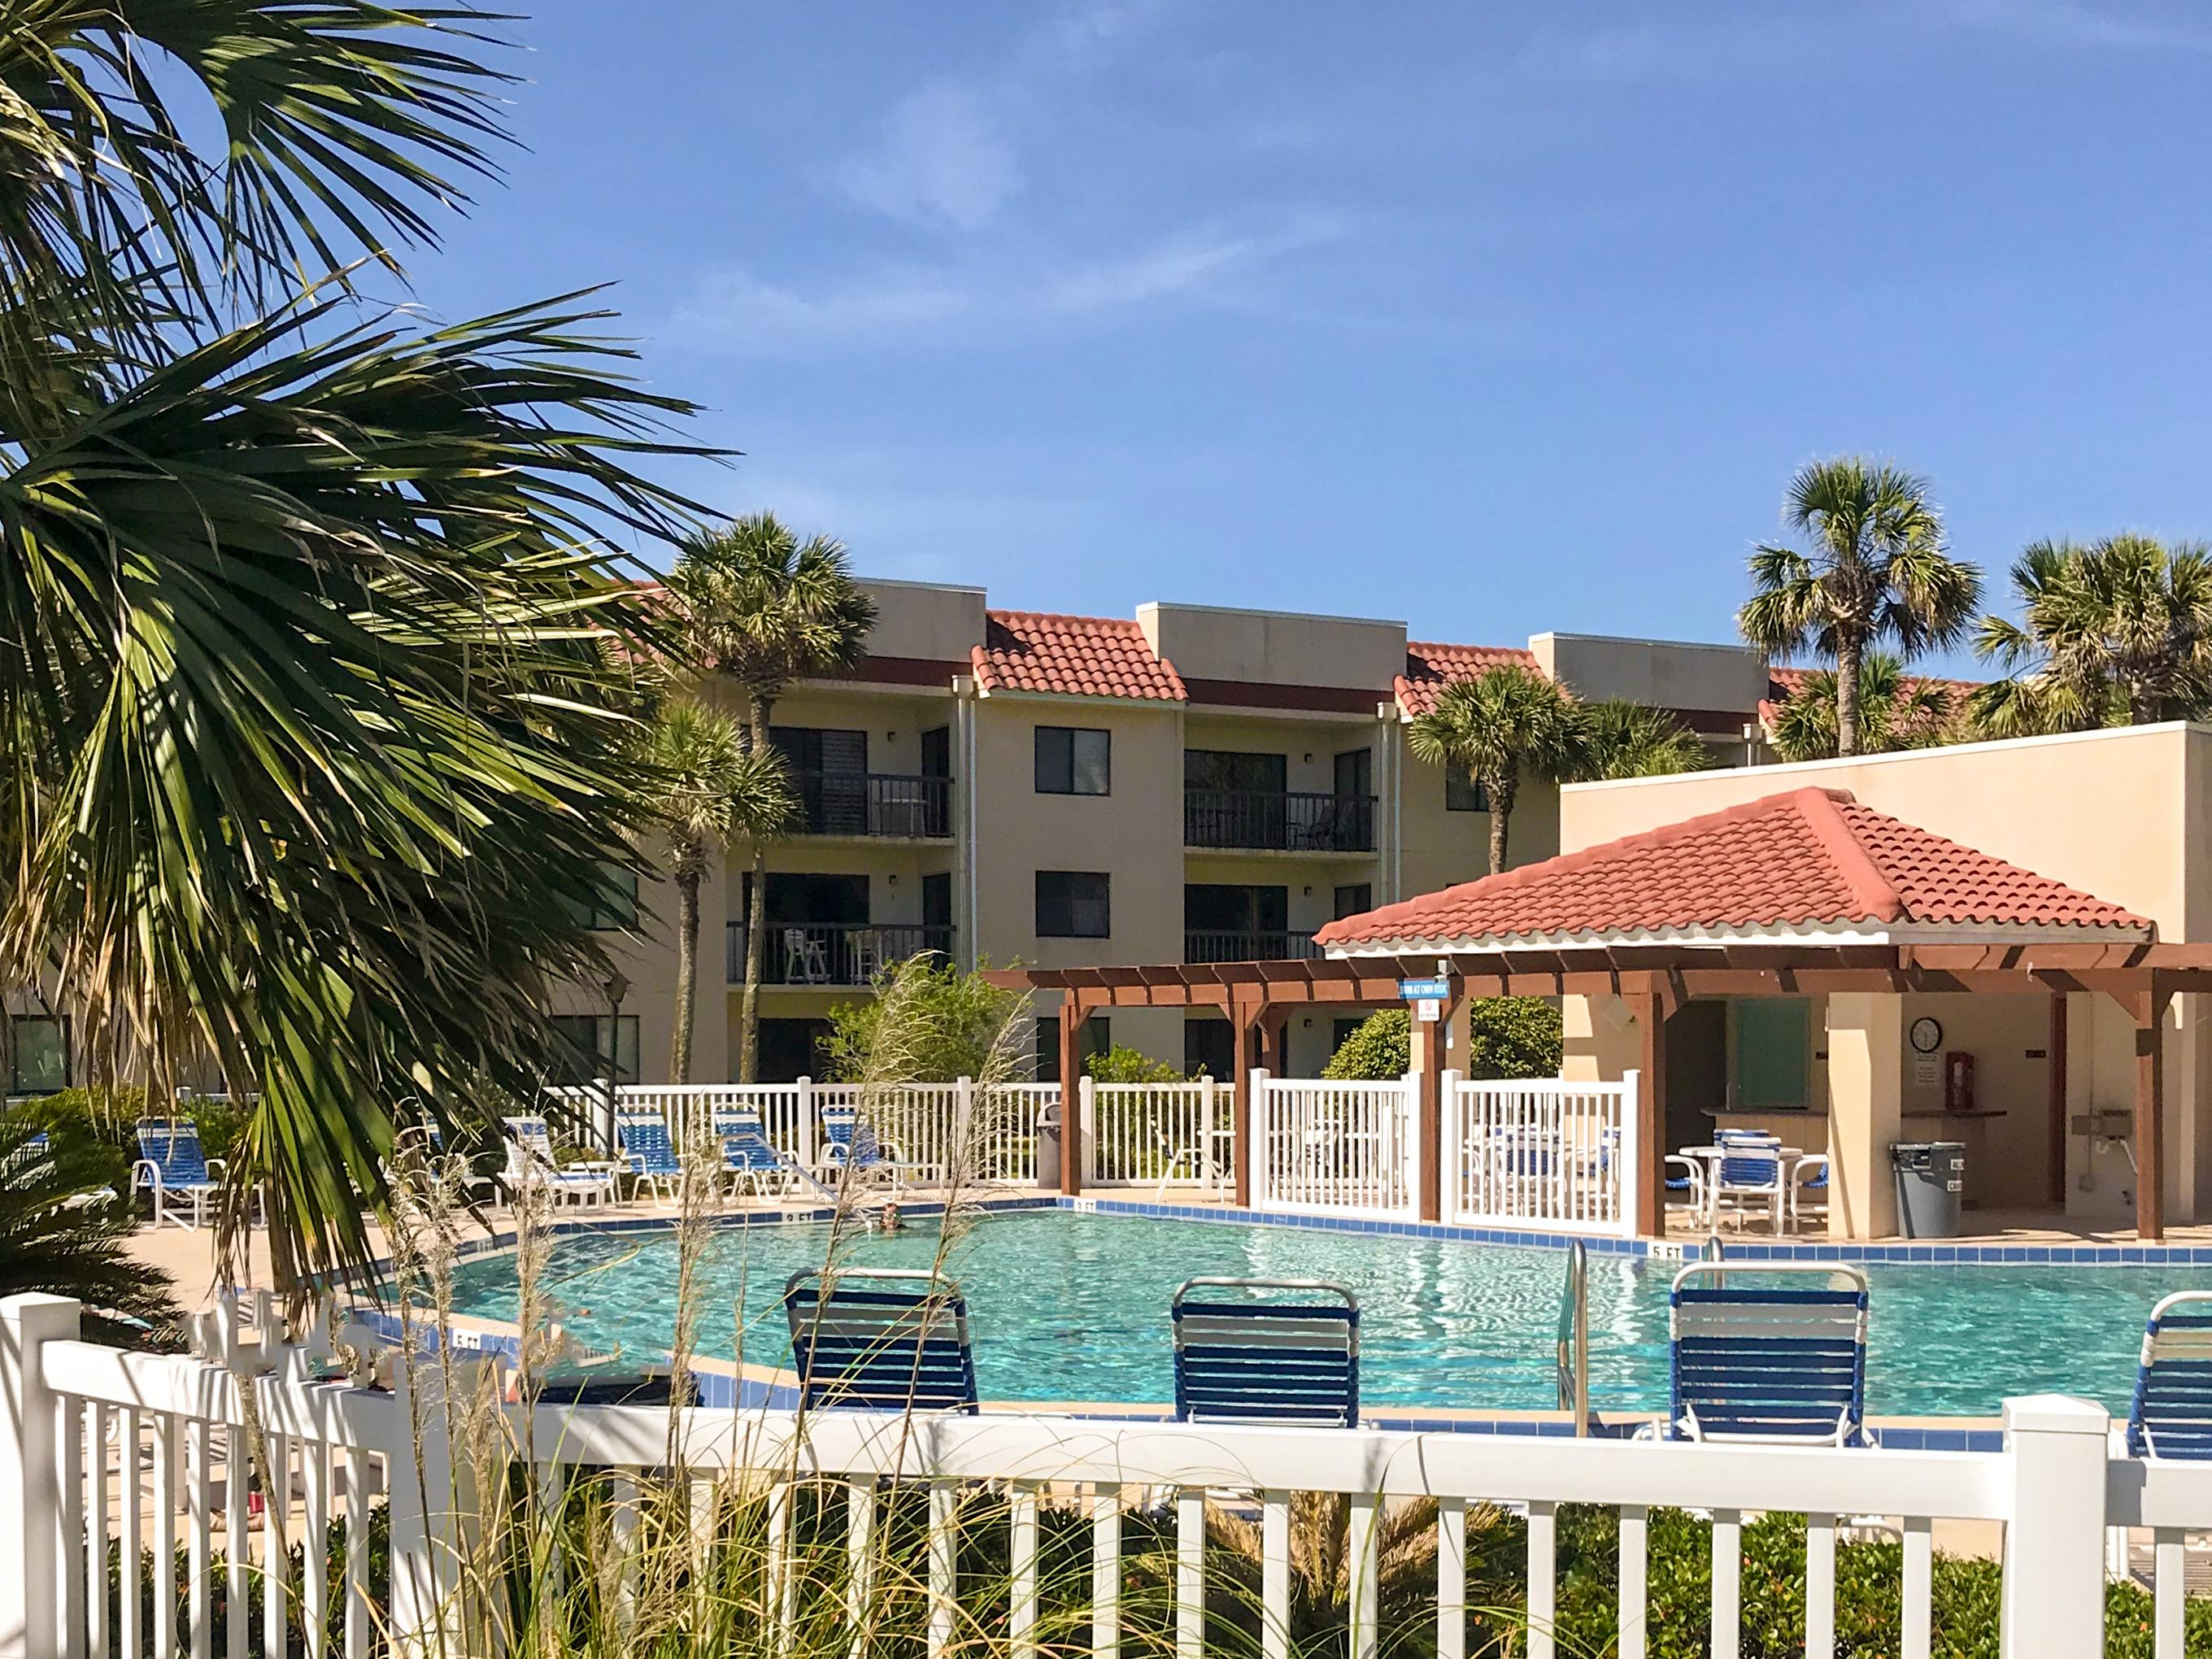 Access 1 of 2 heated shared pools in the gated community of Ocean Village Club.